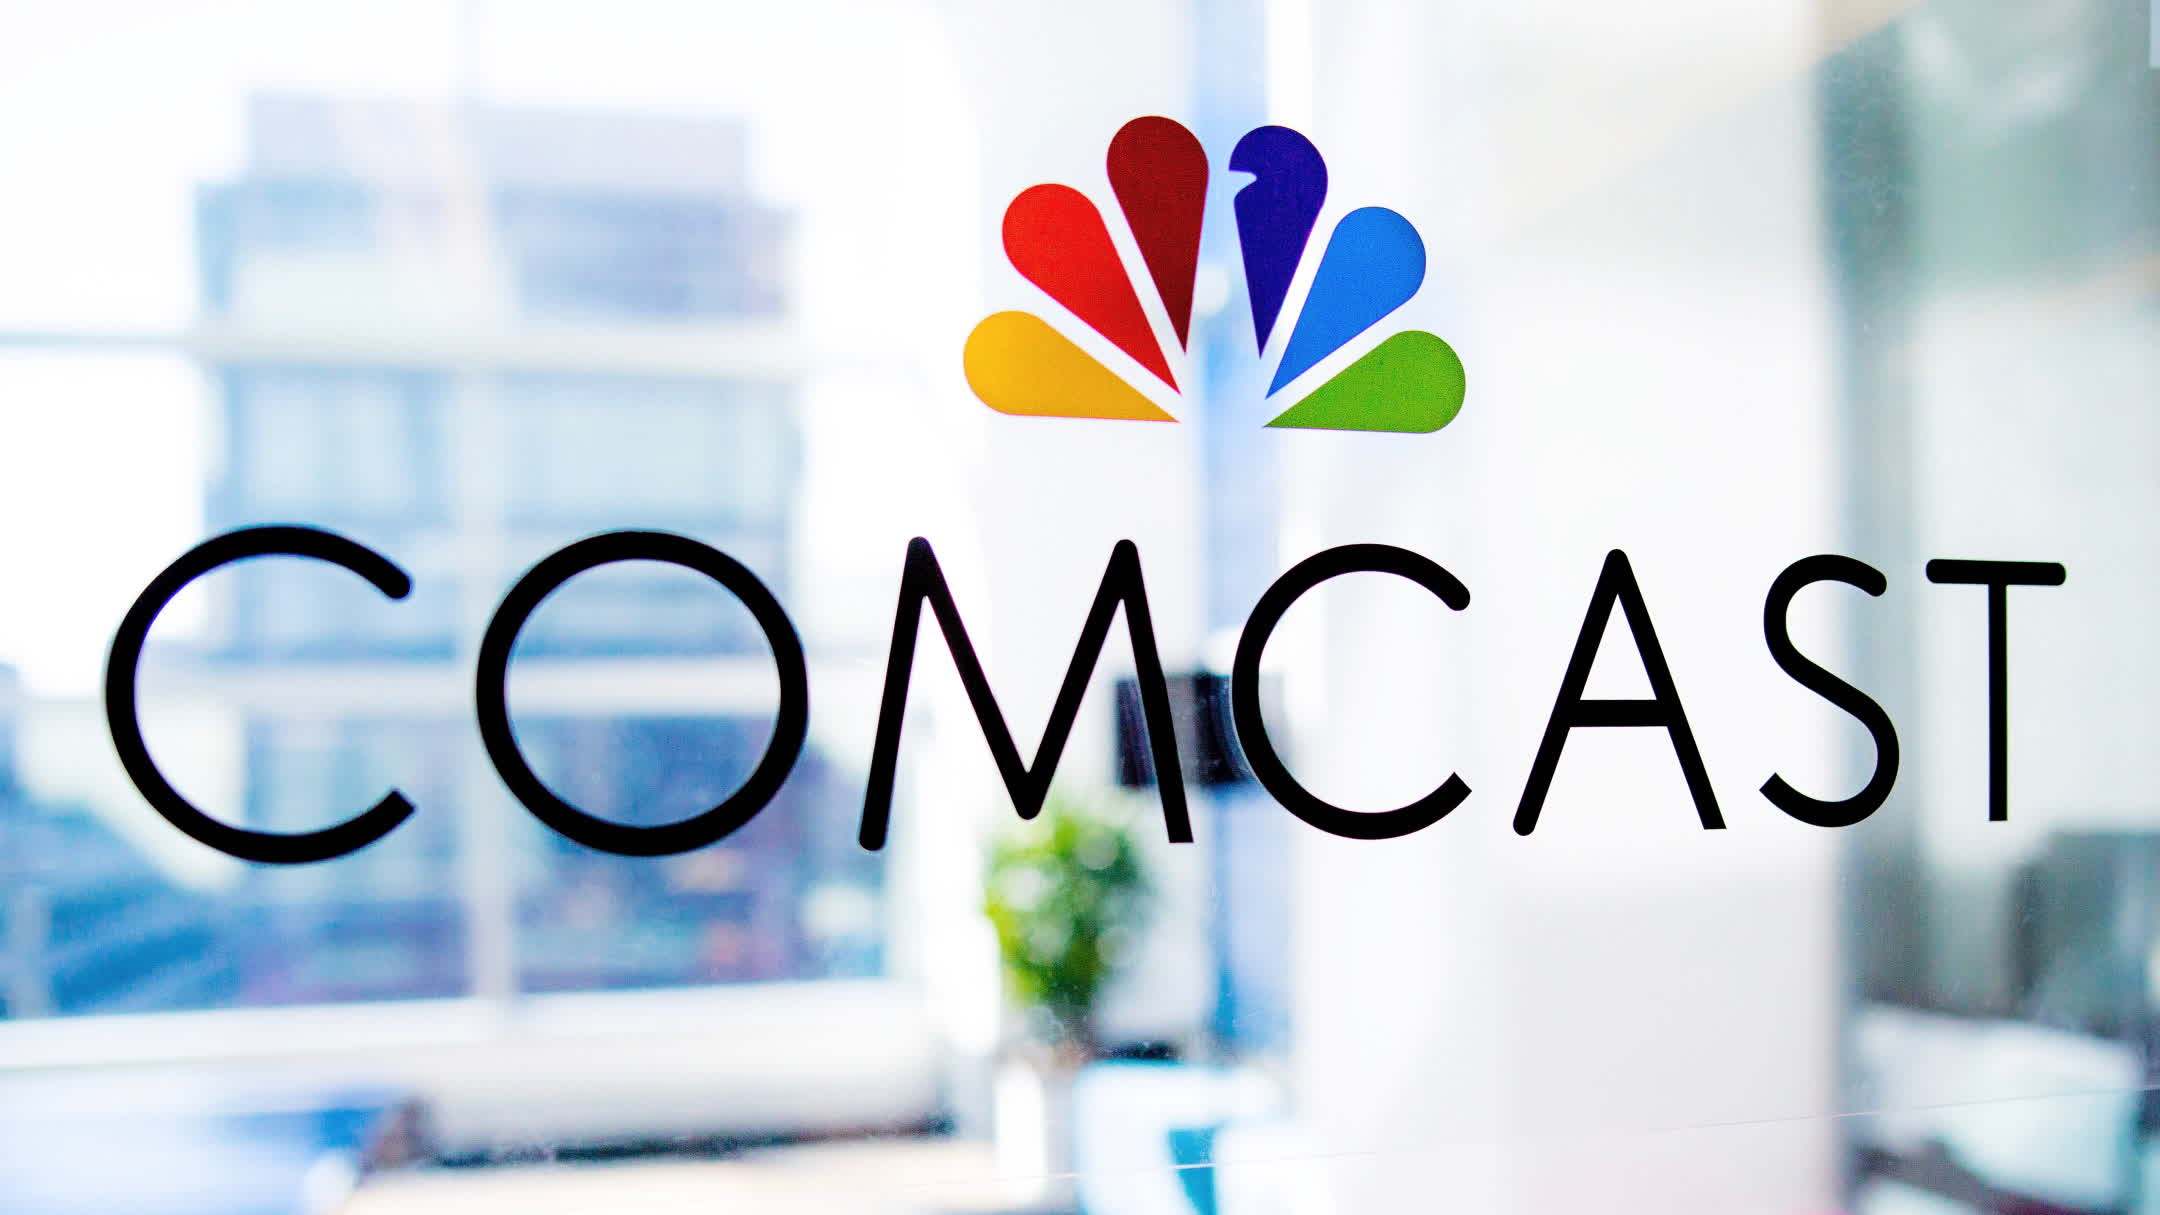 Comcast doubles download speeds for its low-cost 'Internet Essentials' plan